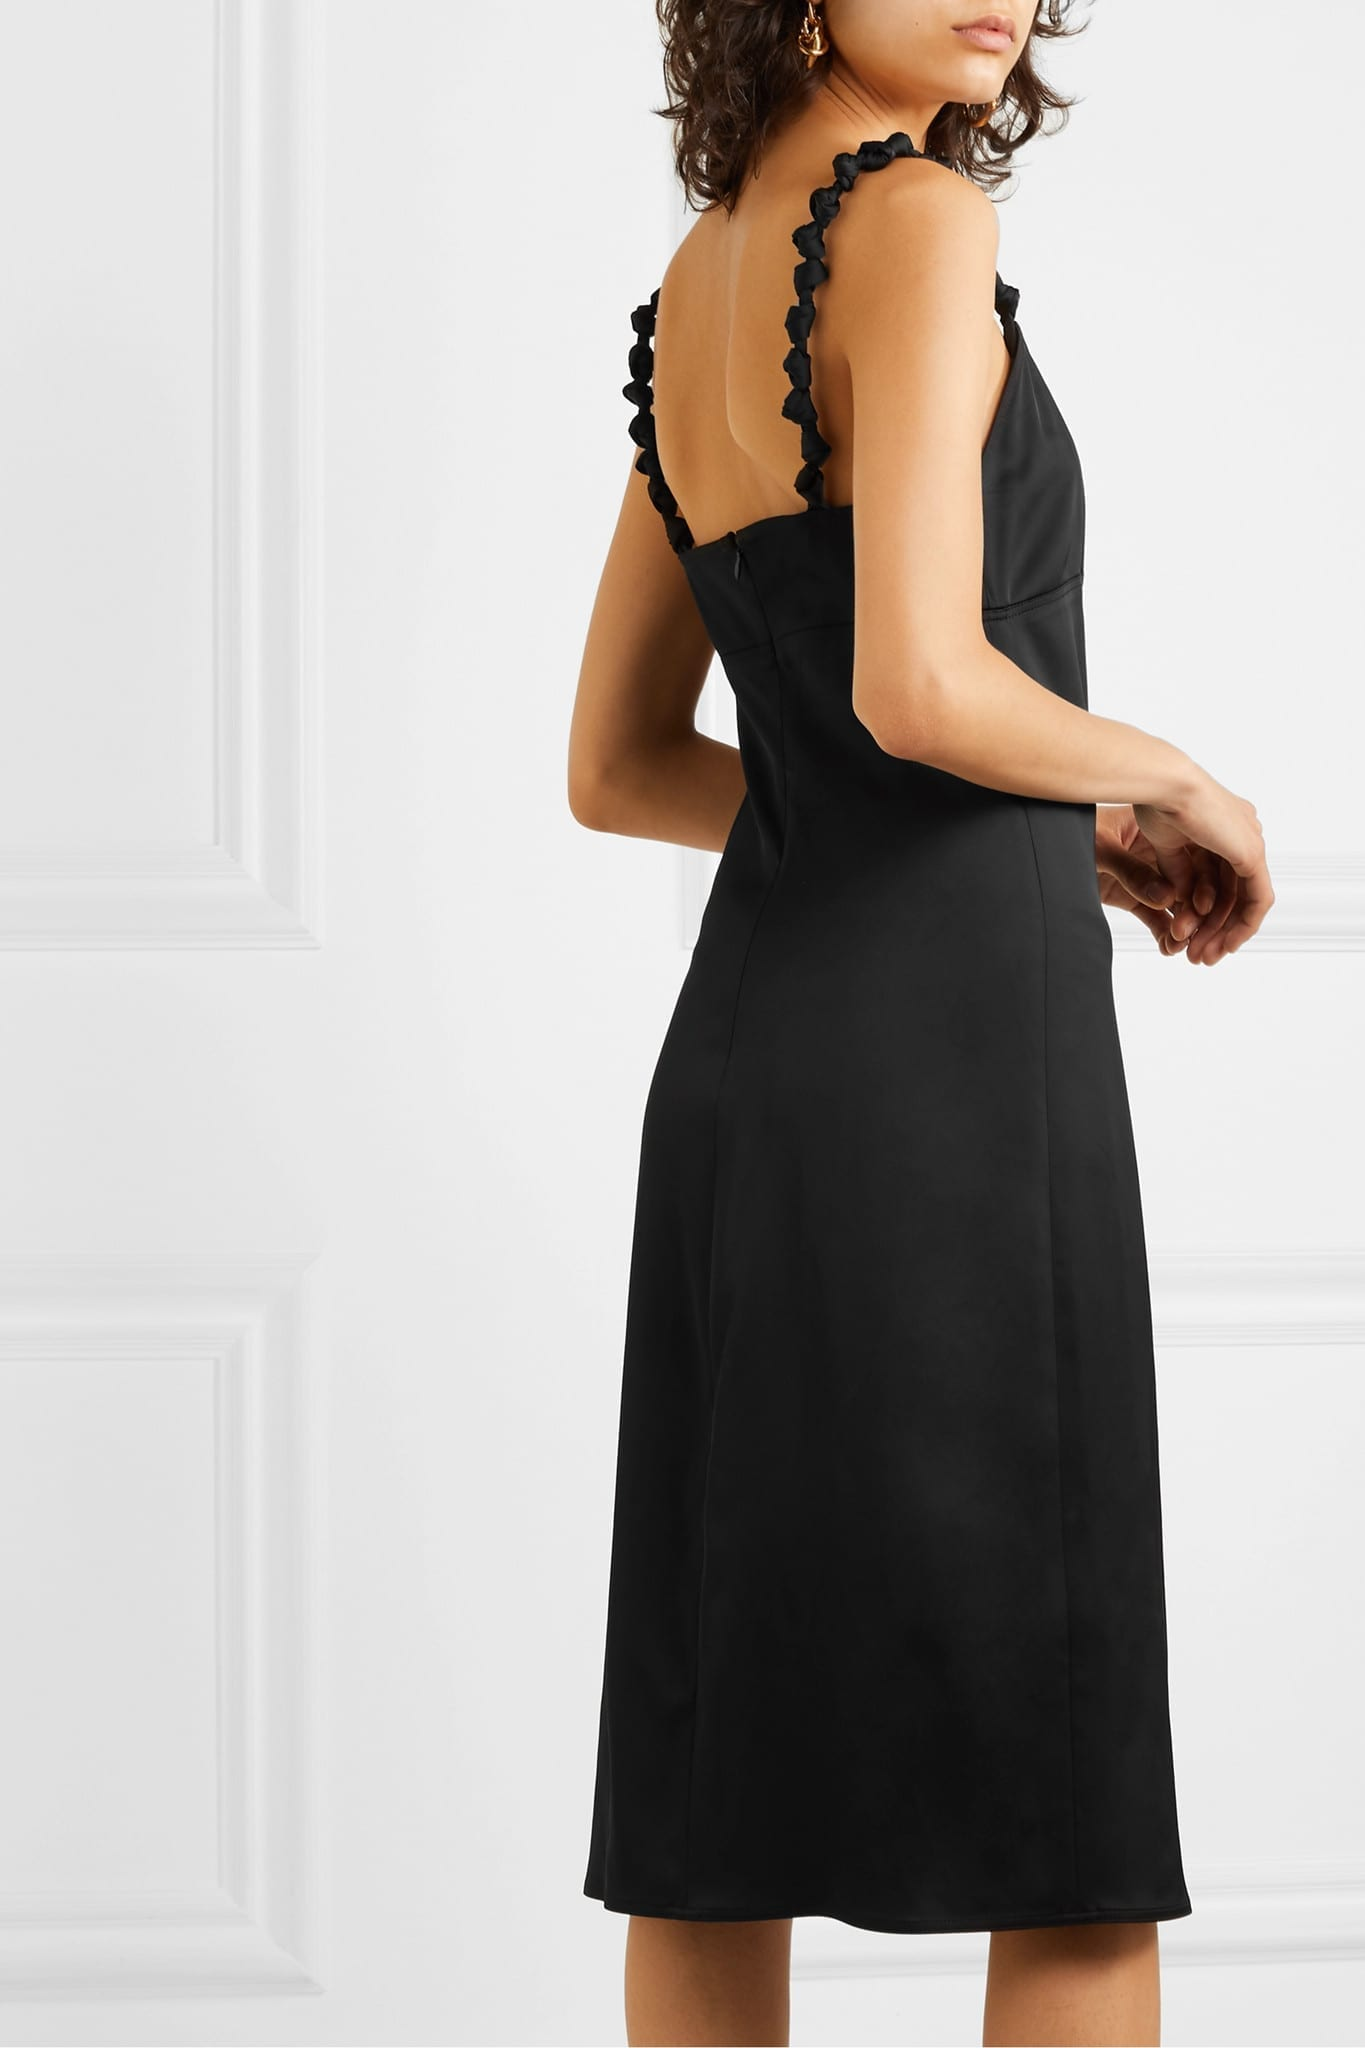 BOTTEGA VENETA Knotted Satin Dress